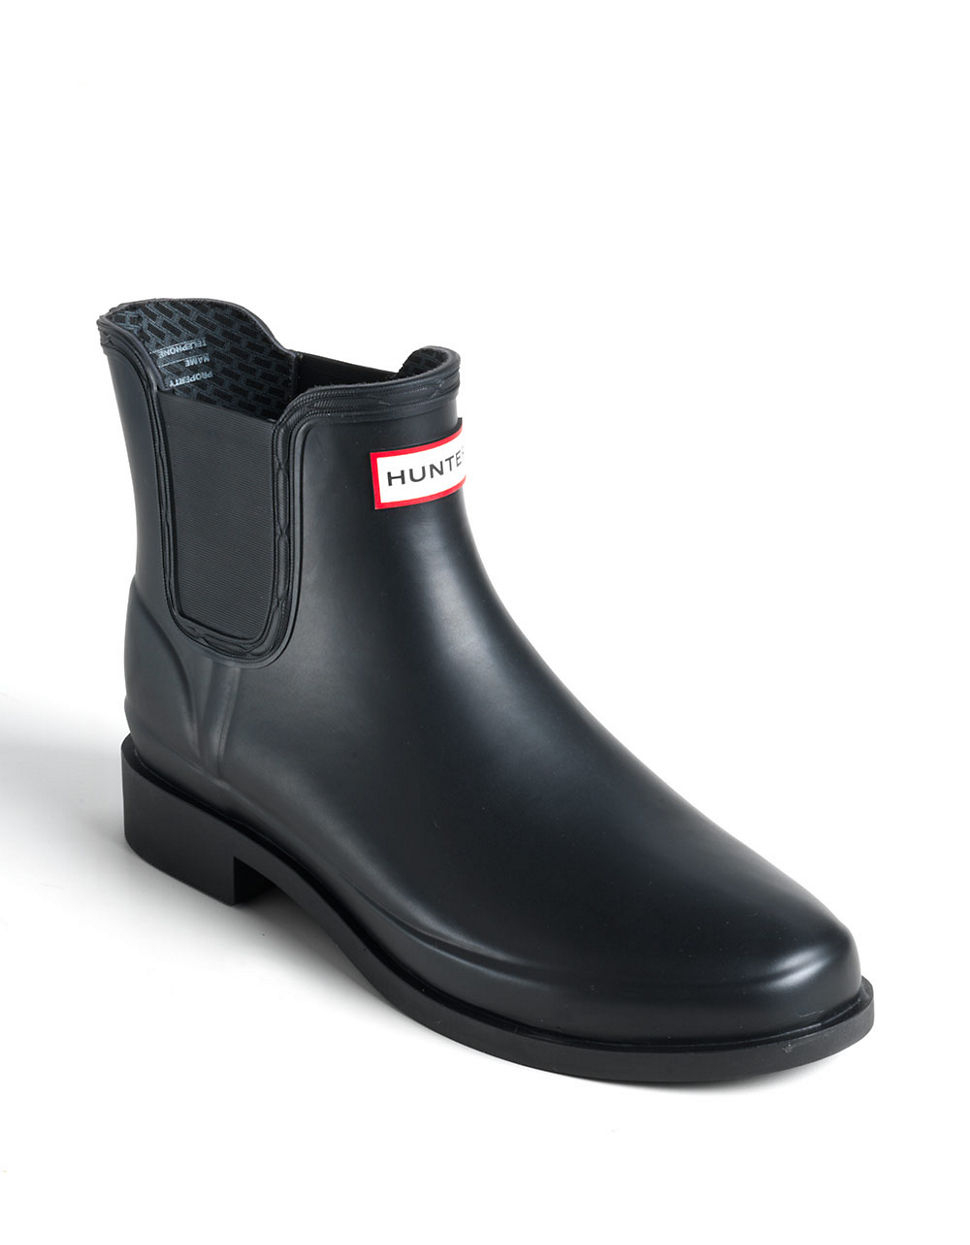 Hunter Chet Short Rainboots In Black For Men Lyst